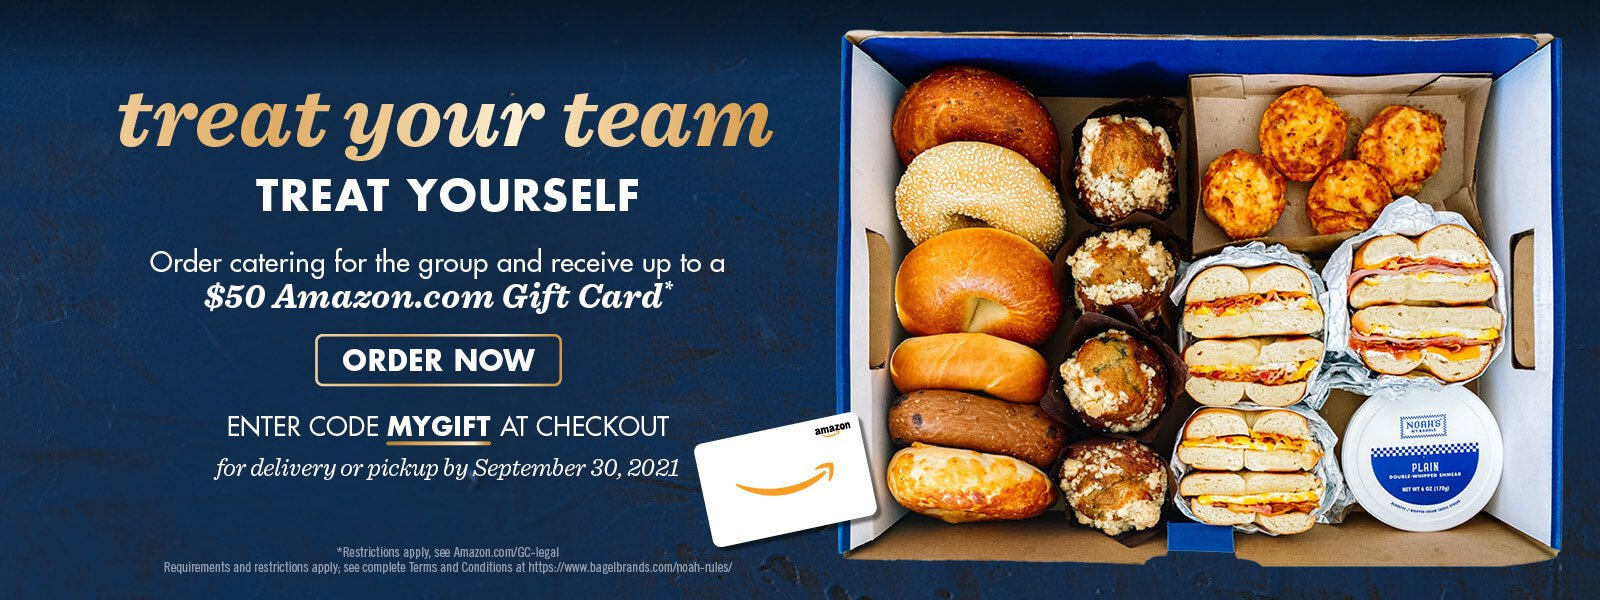 Order Noah's NY Bagels for catering and earn an Amazon gift card